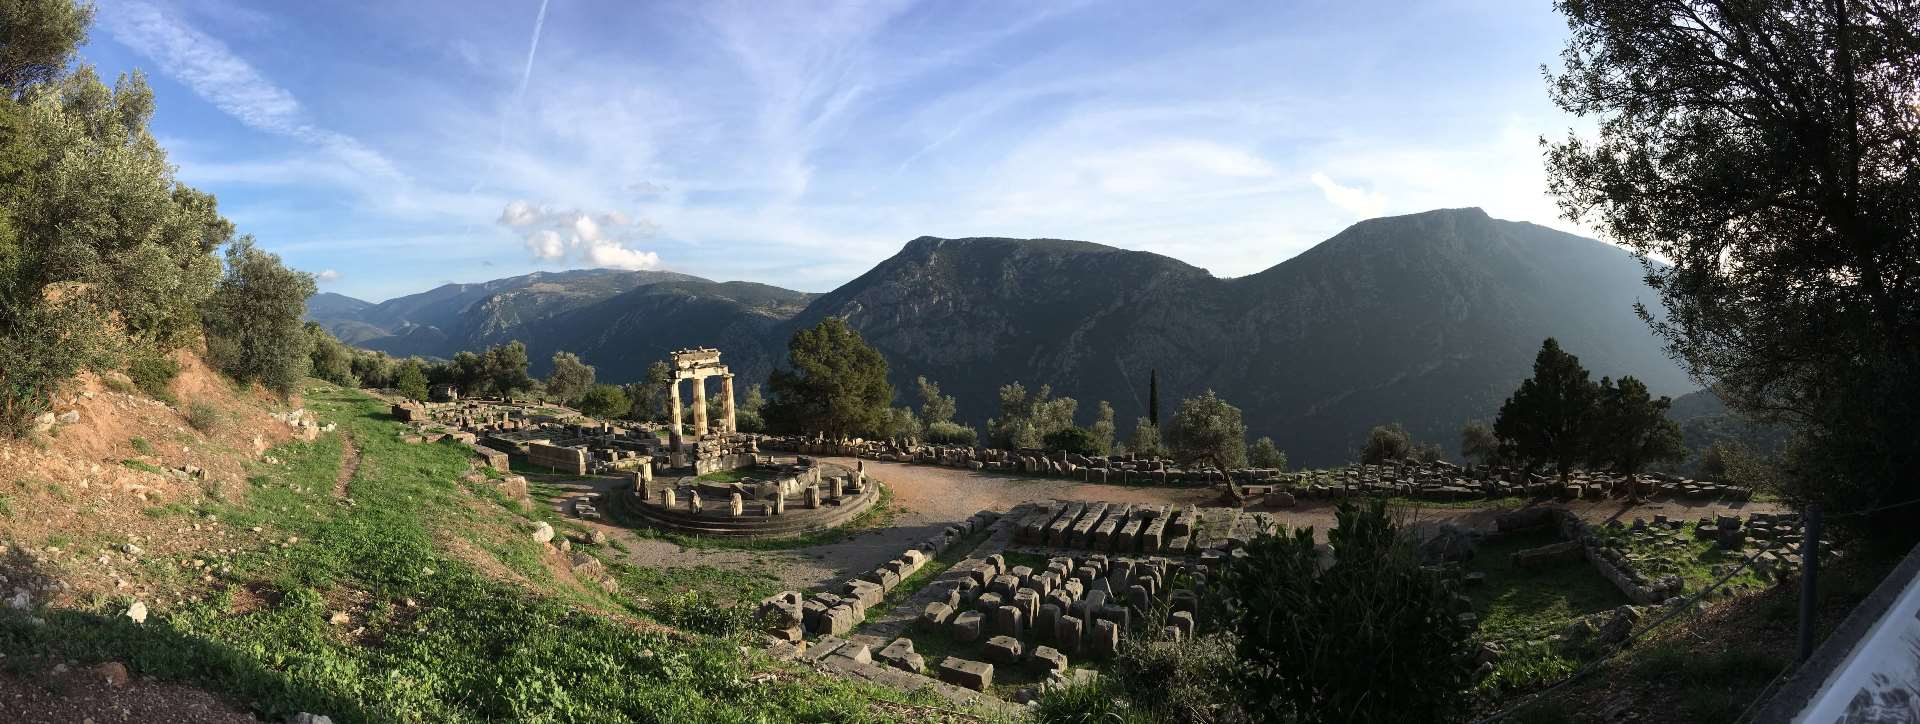 Taking my kids to the Oracle of Delphi